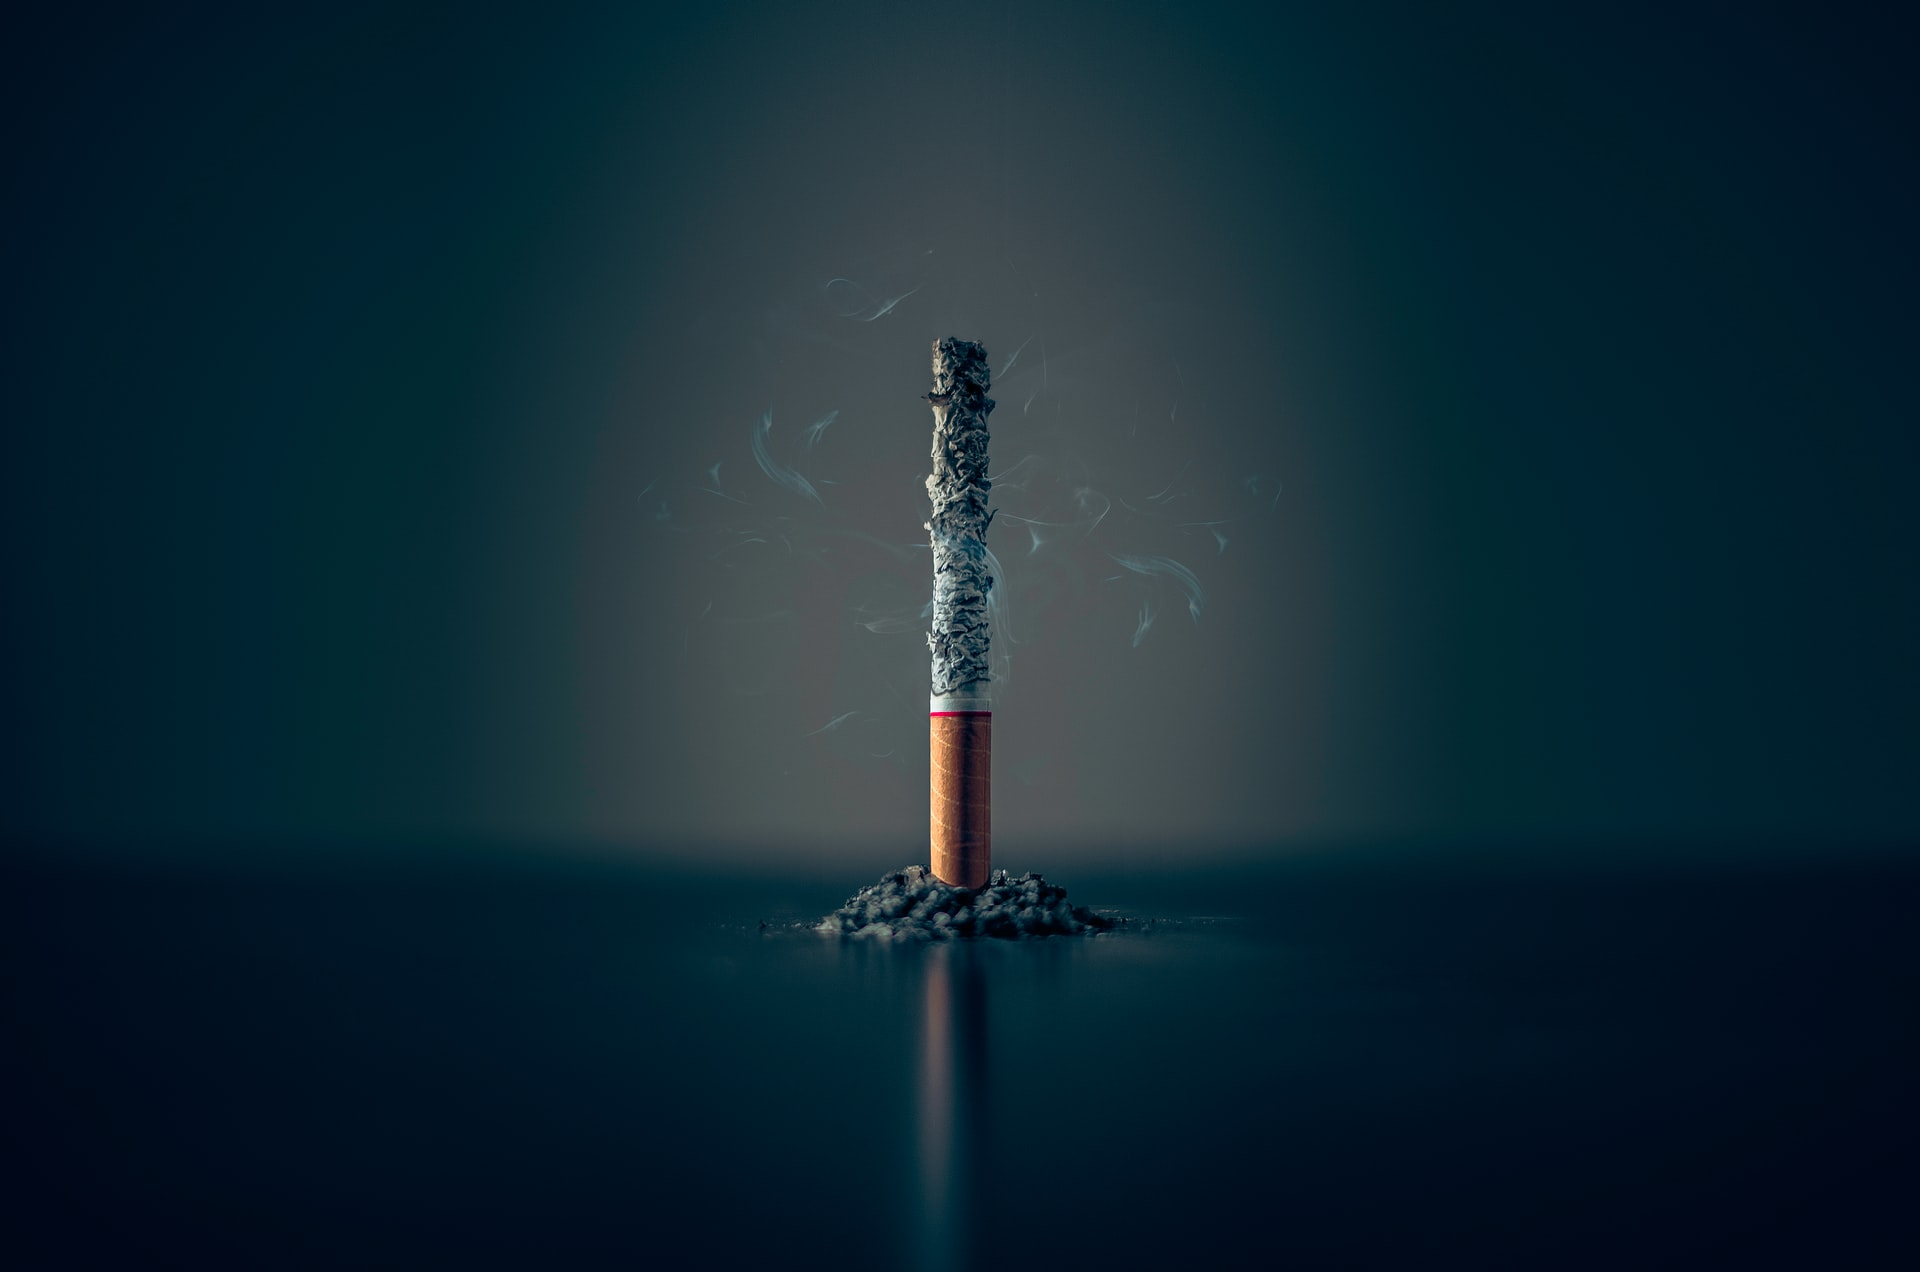 Public Support Innovative Approaches to Reducing Smoking Rates - PMI Survey Brandspurng